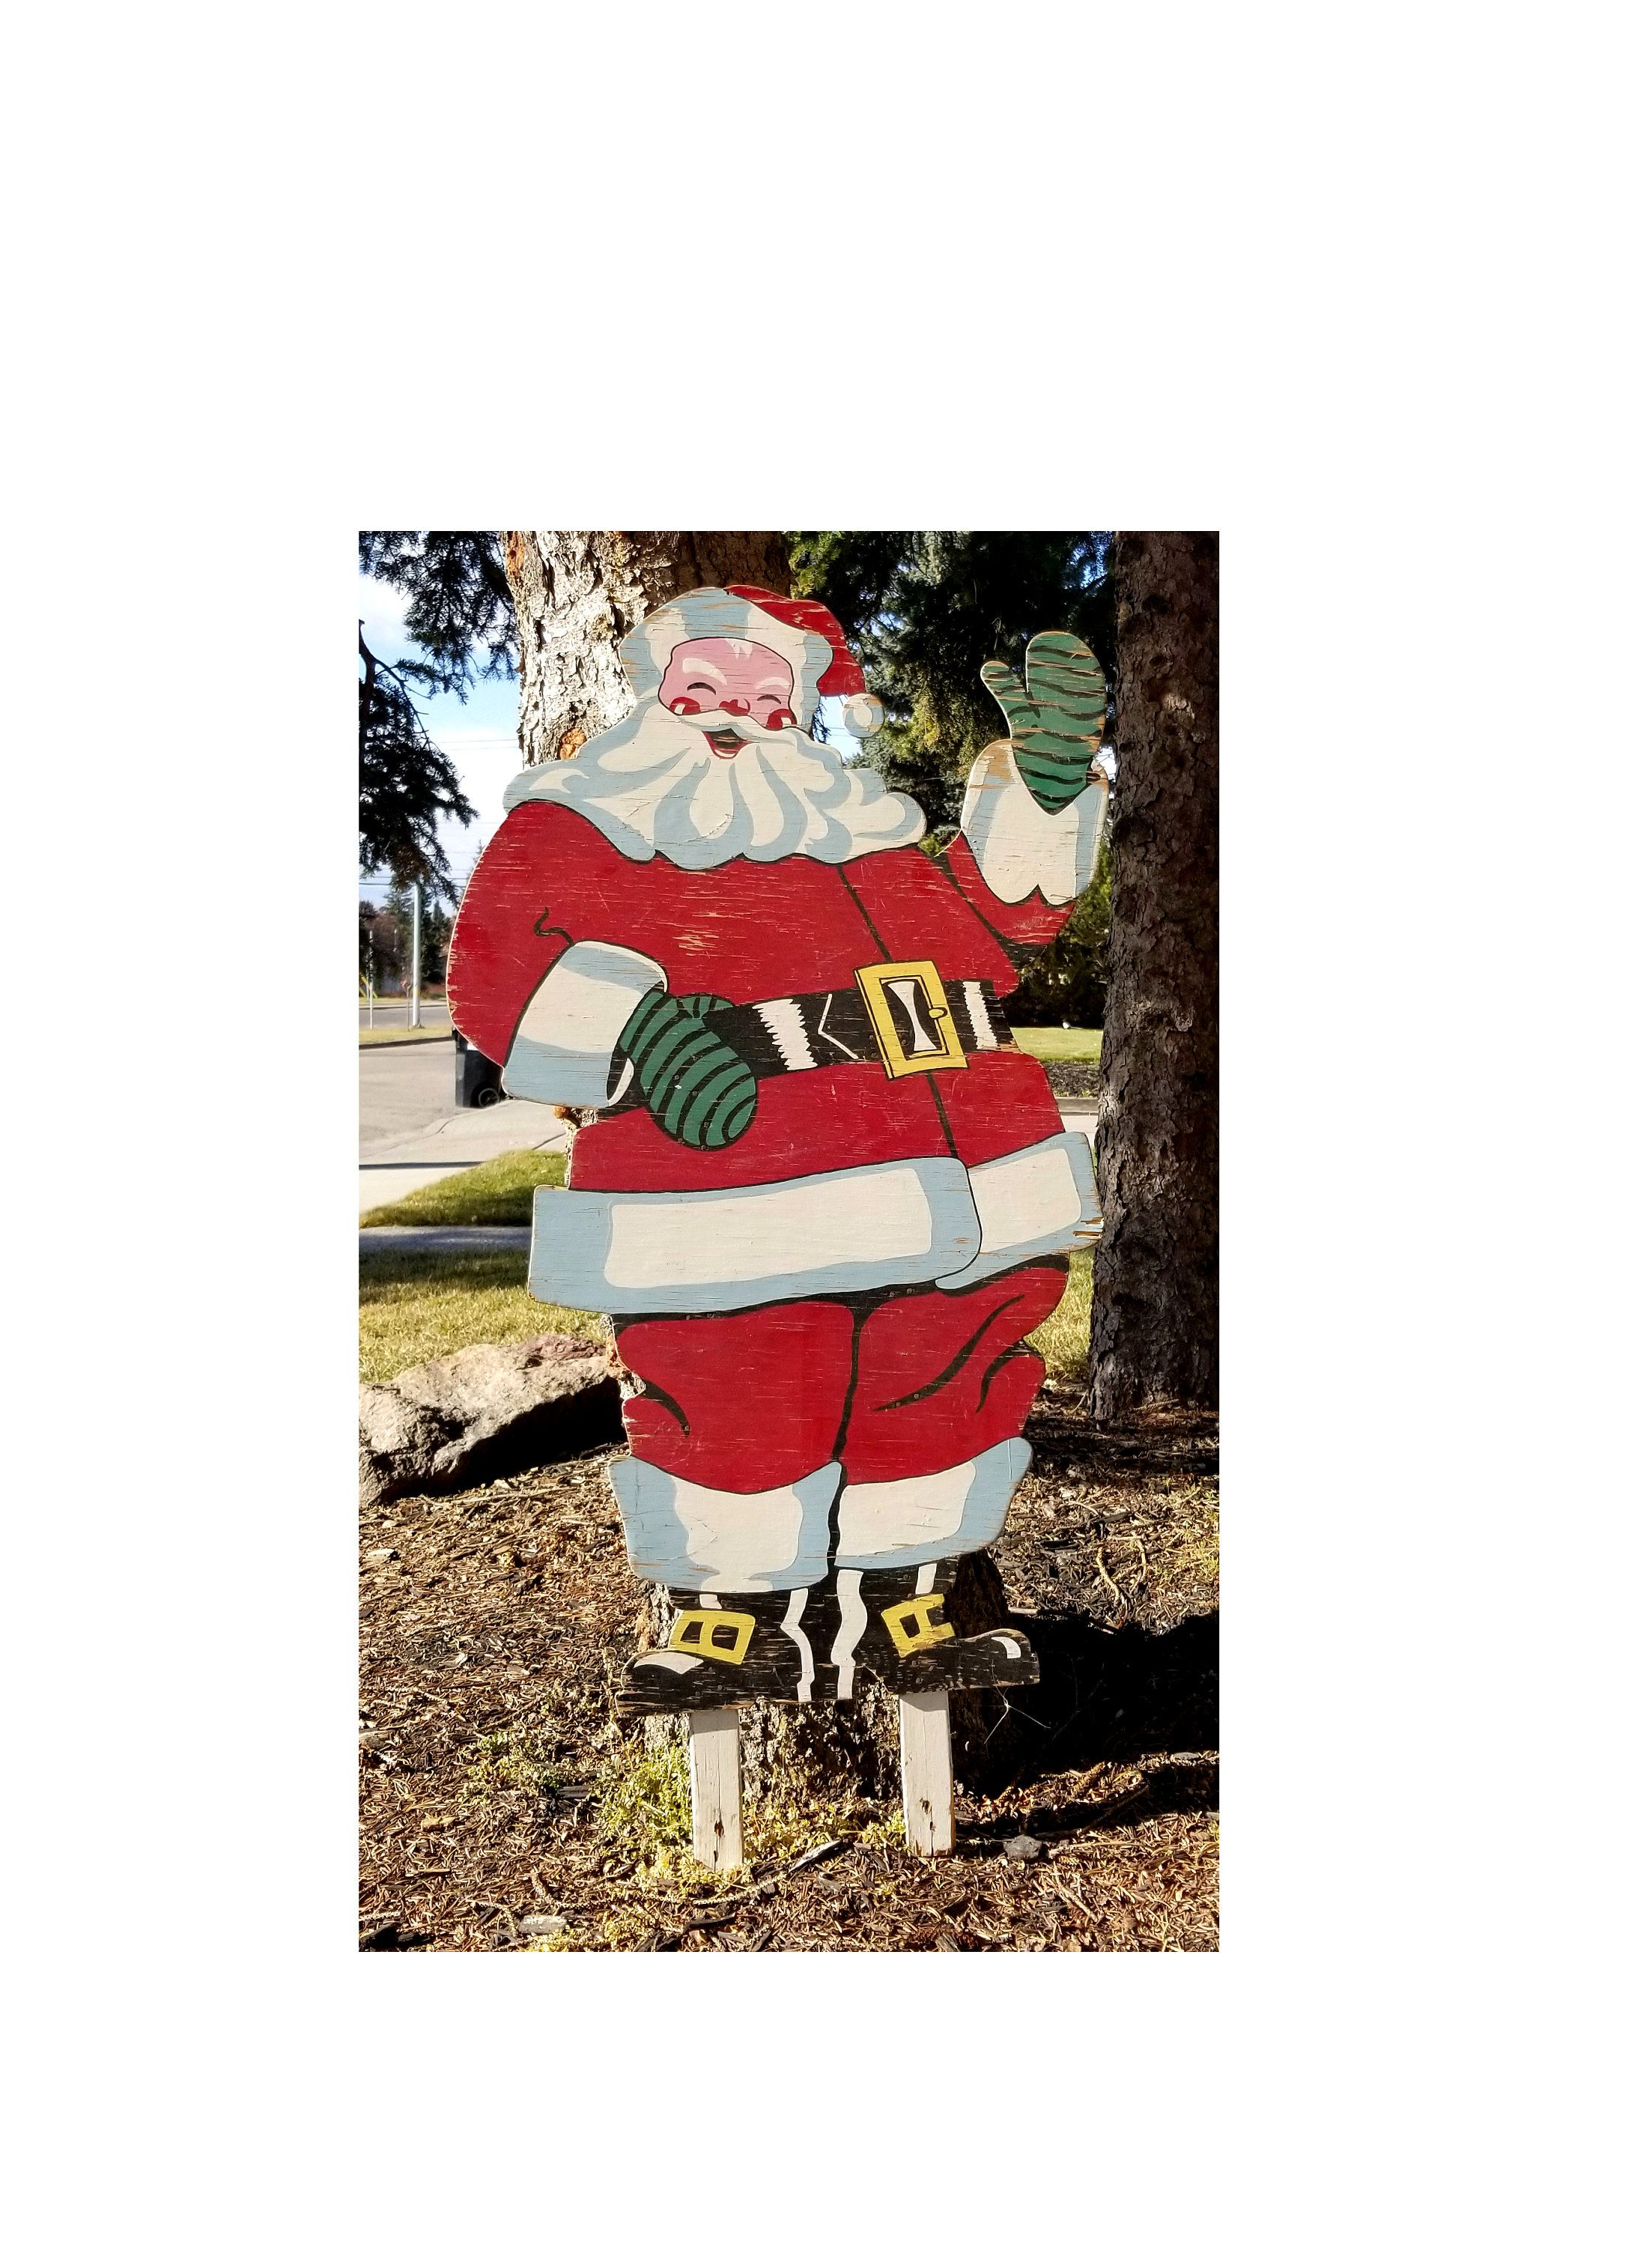 Vintage 1950s Plywood Santa Easi Bild Large 40 X 26 Inches Stand Hand Painted Outdoor Decoration Jolly Santa Claus L Santa Patterns Jolly Santa Vintage Christmas